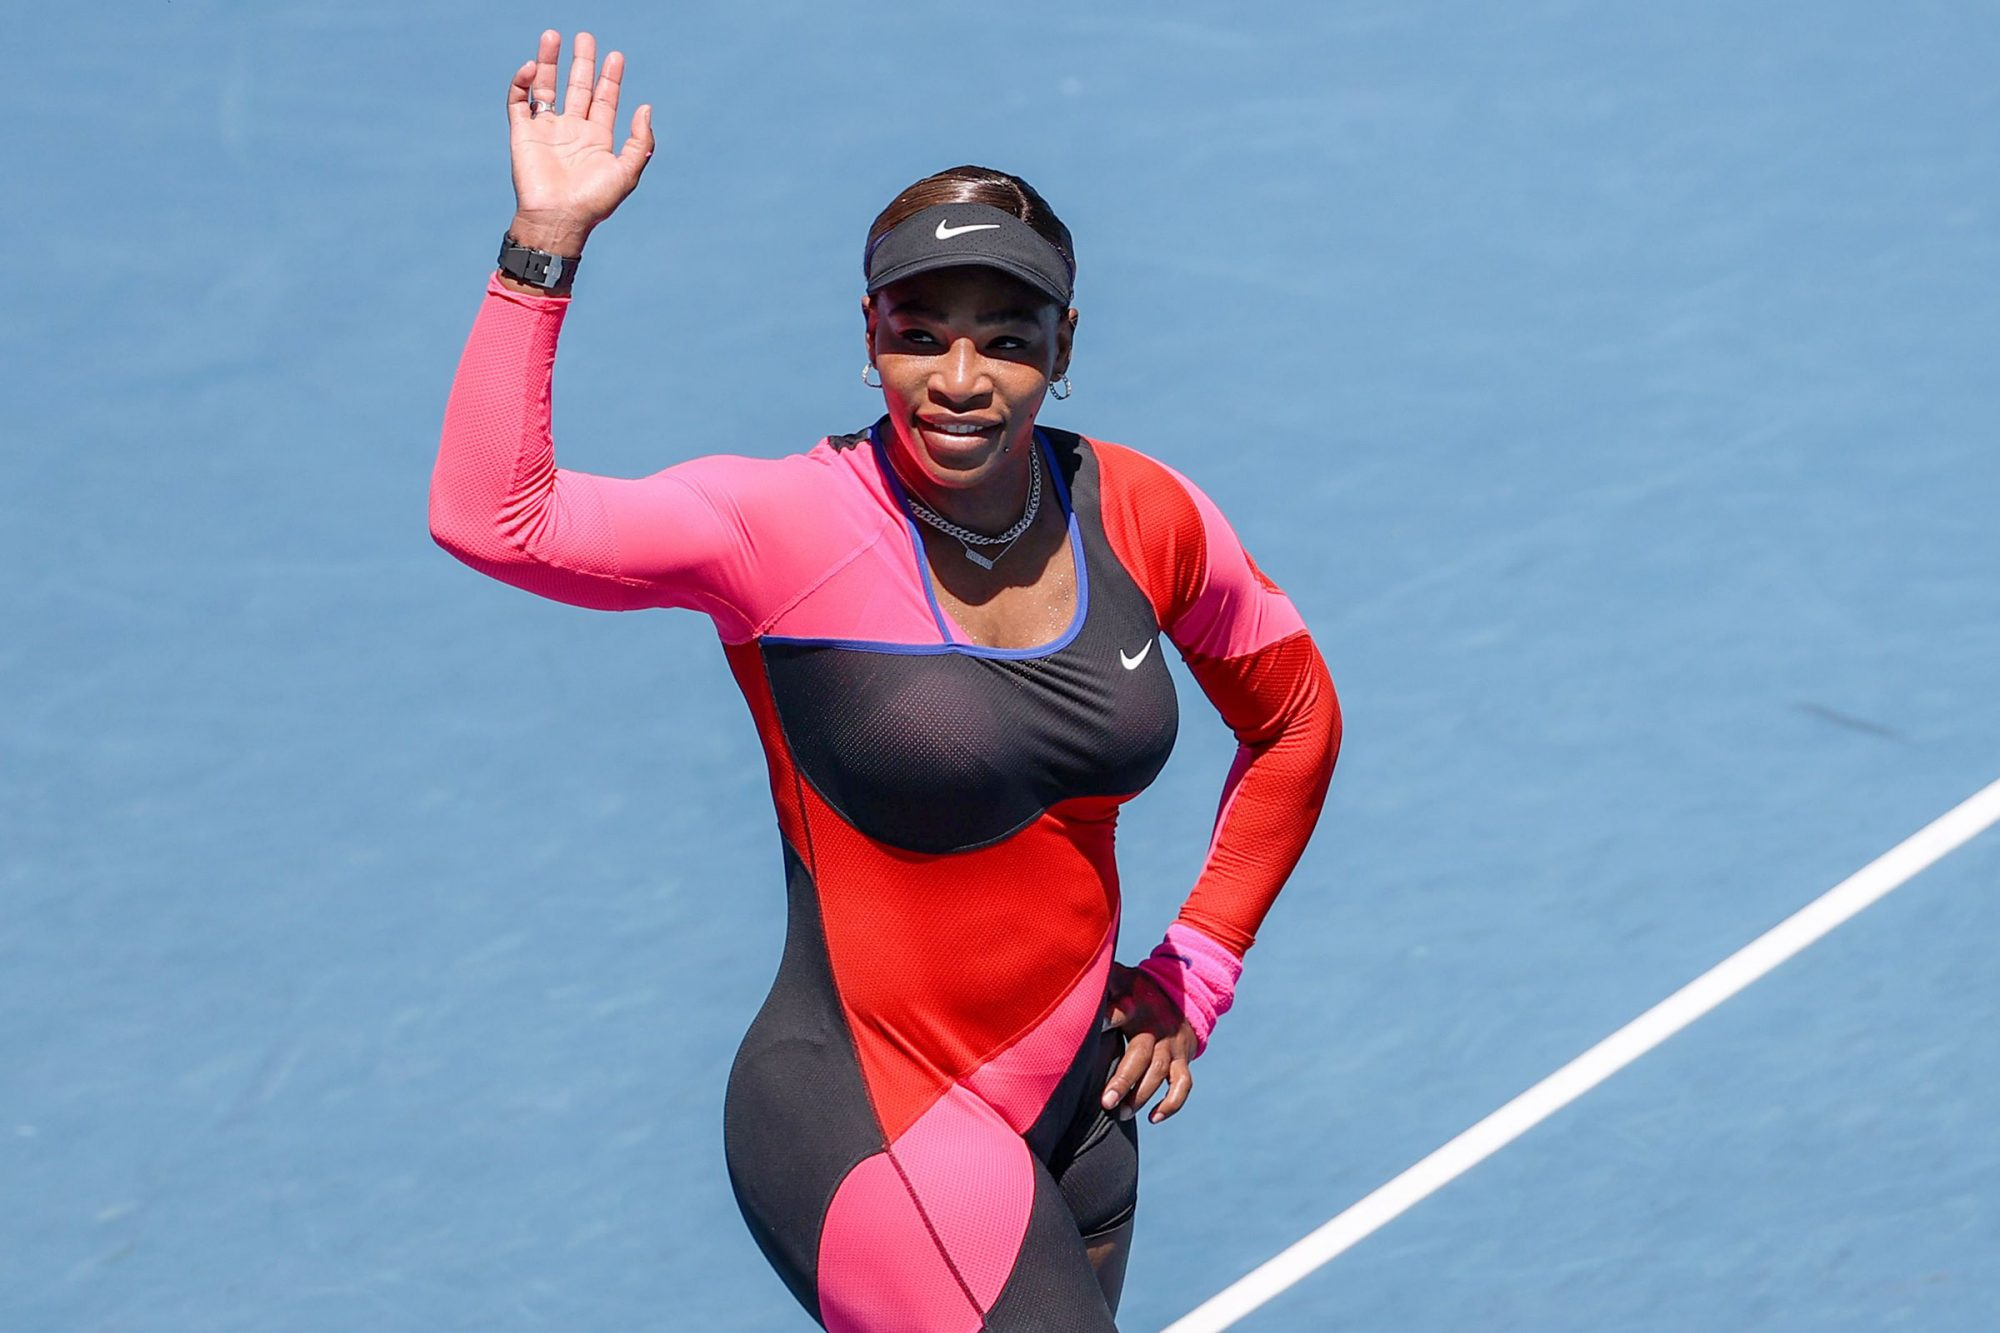 Serena Williams of the United States celebrates after the women's singles second round match between Nina Stojanovic of Serbia and Serena Williams of the United States at Australian Open in Melbourne Park